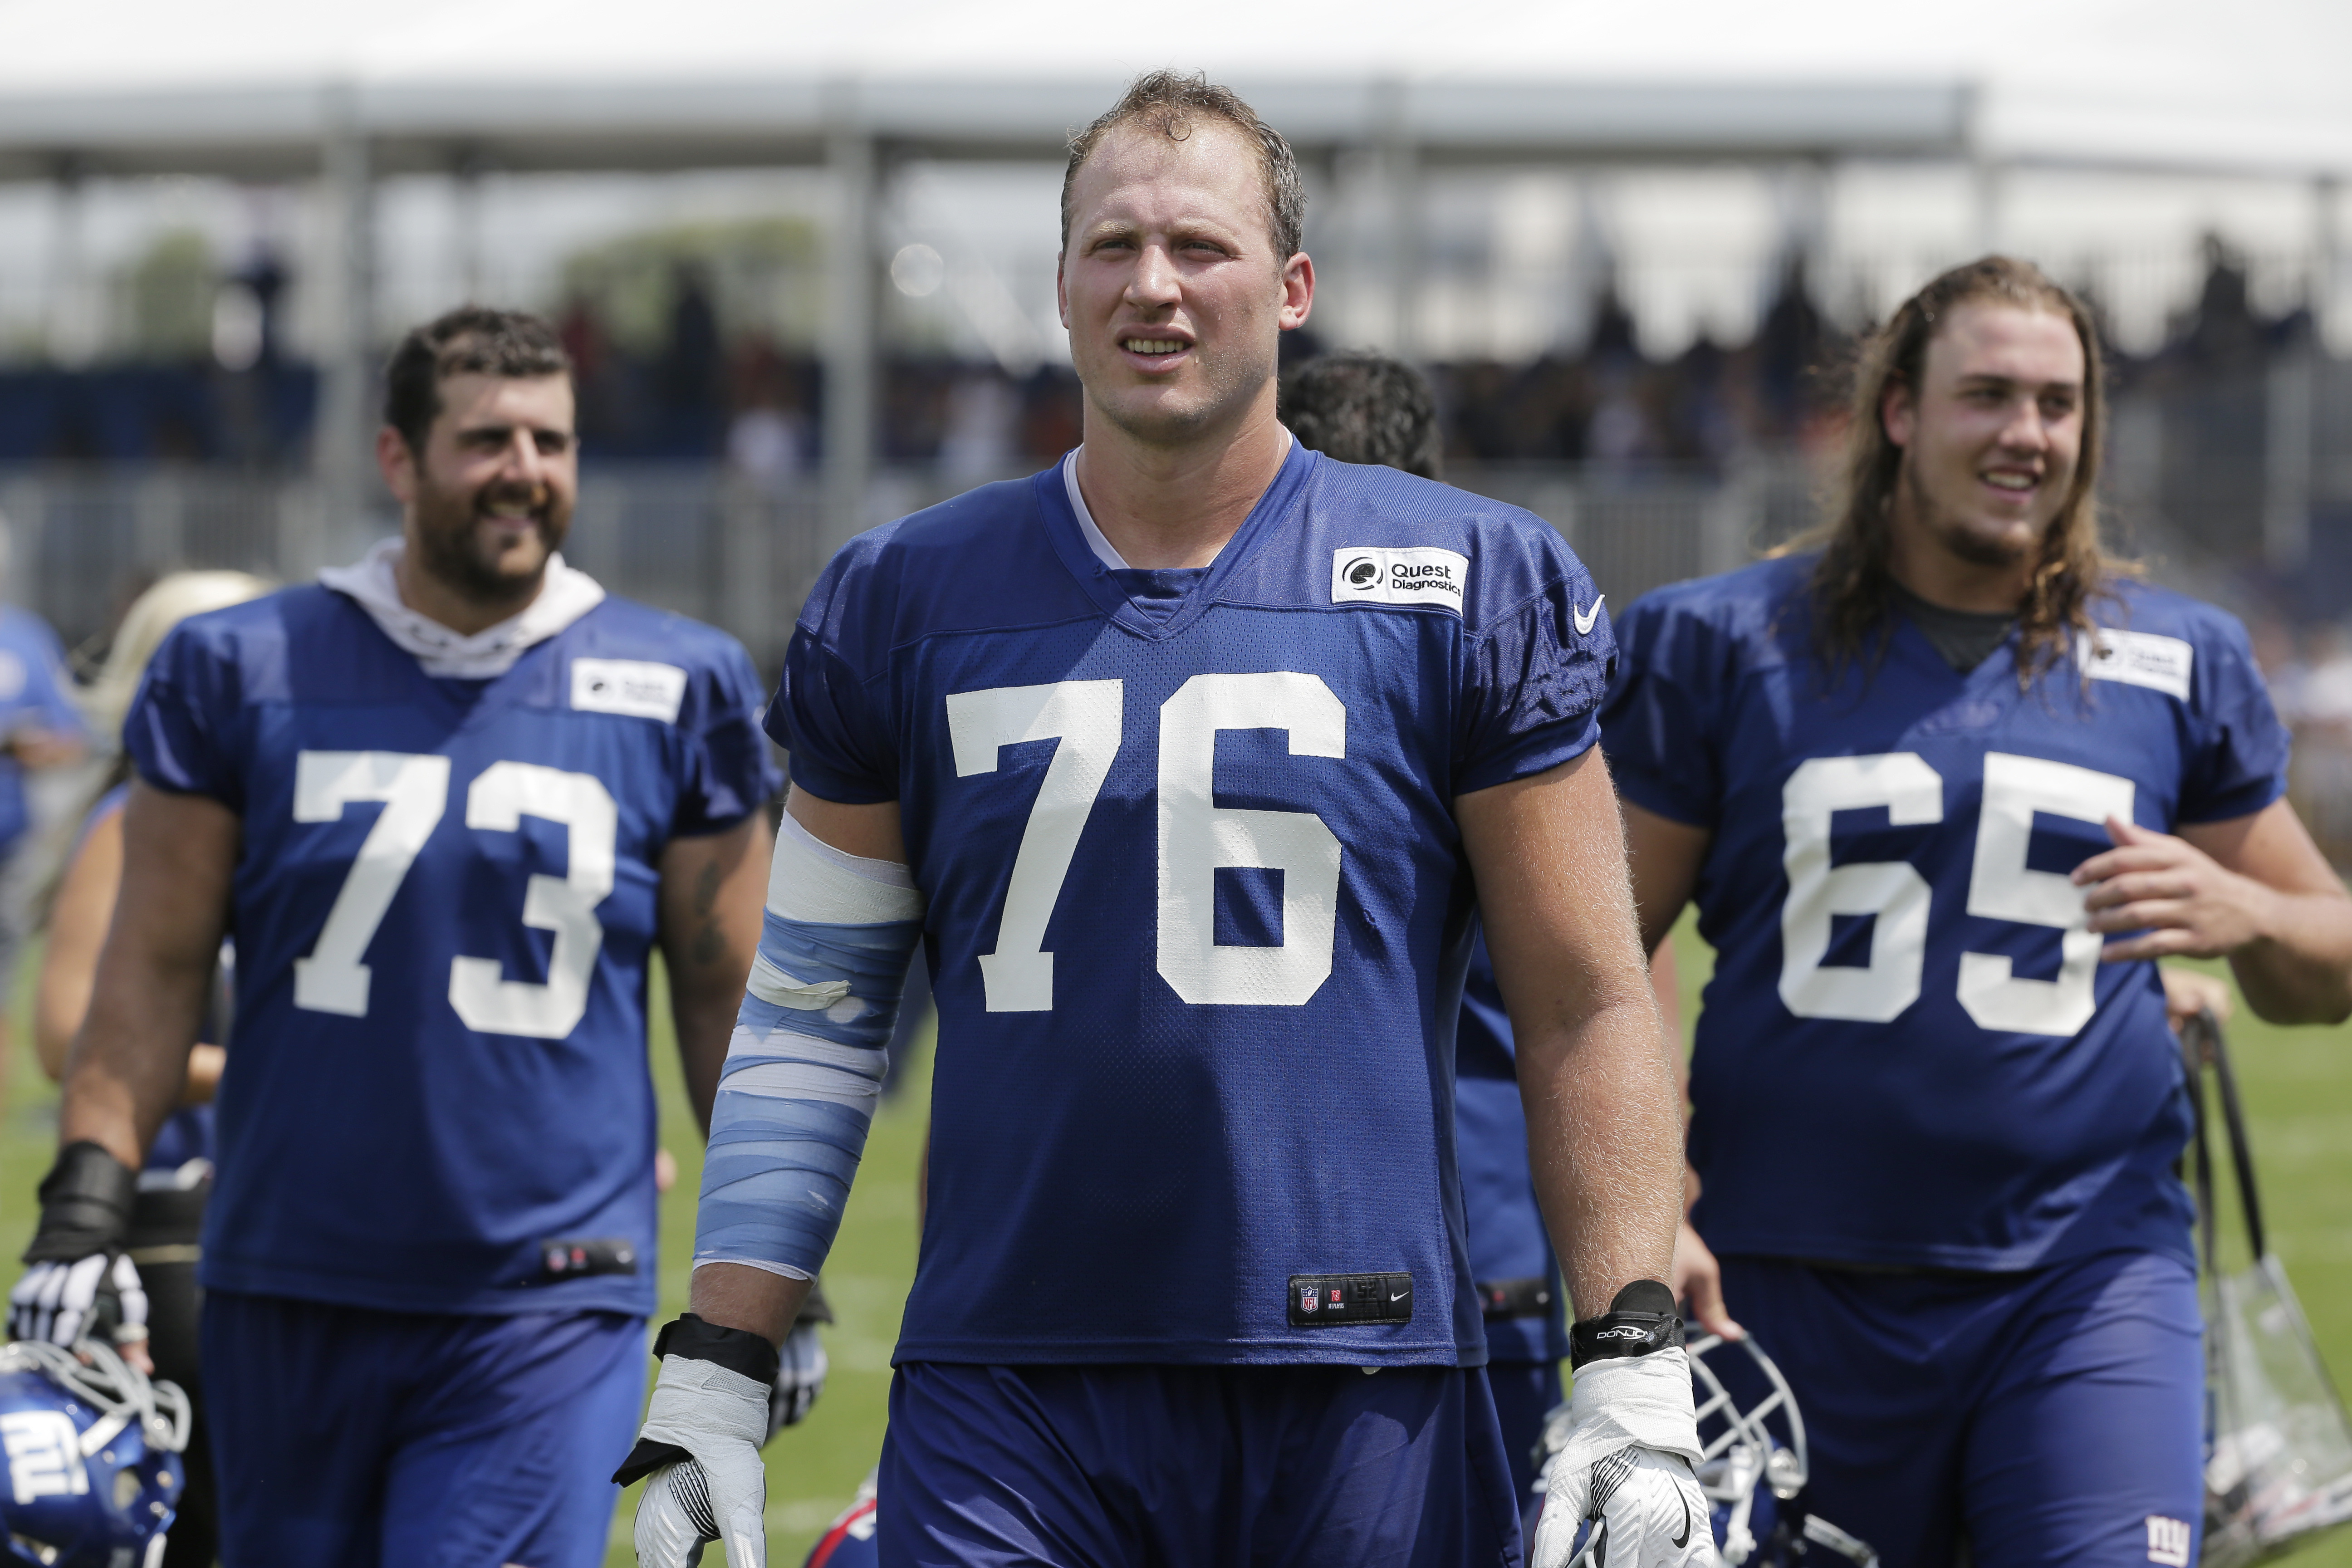 buy popular e194a 00d4b He's really flourishing': For Nate Solder, a new chapter and ...